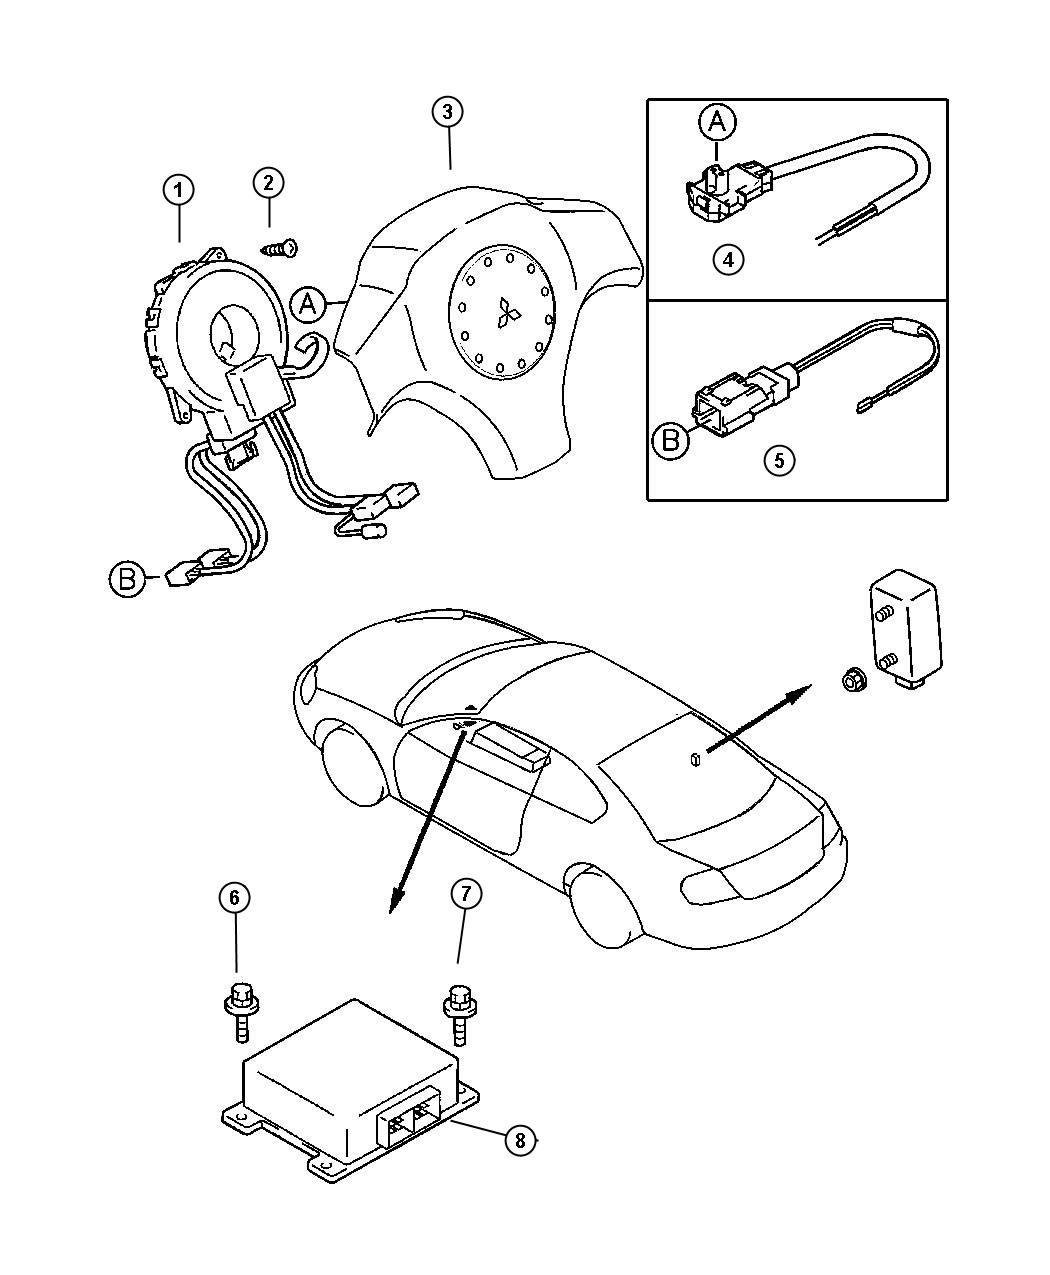 [DIAGRAM] Chrysler Sebring Wiring Diagram Horn FULL